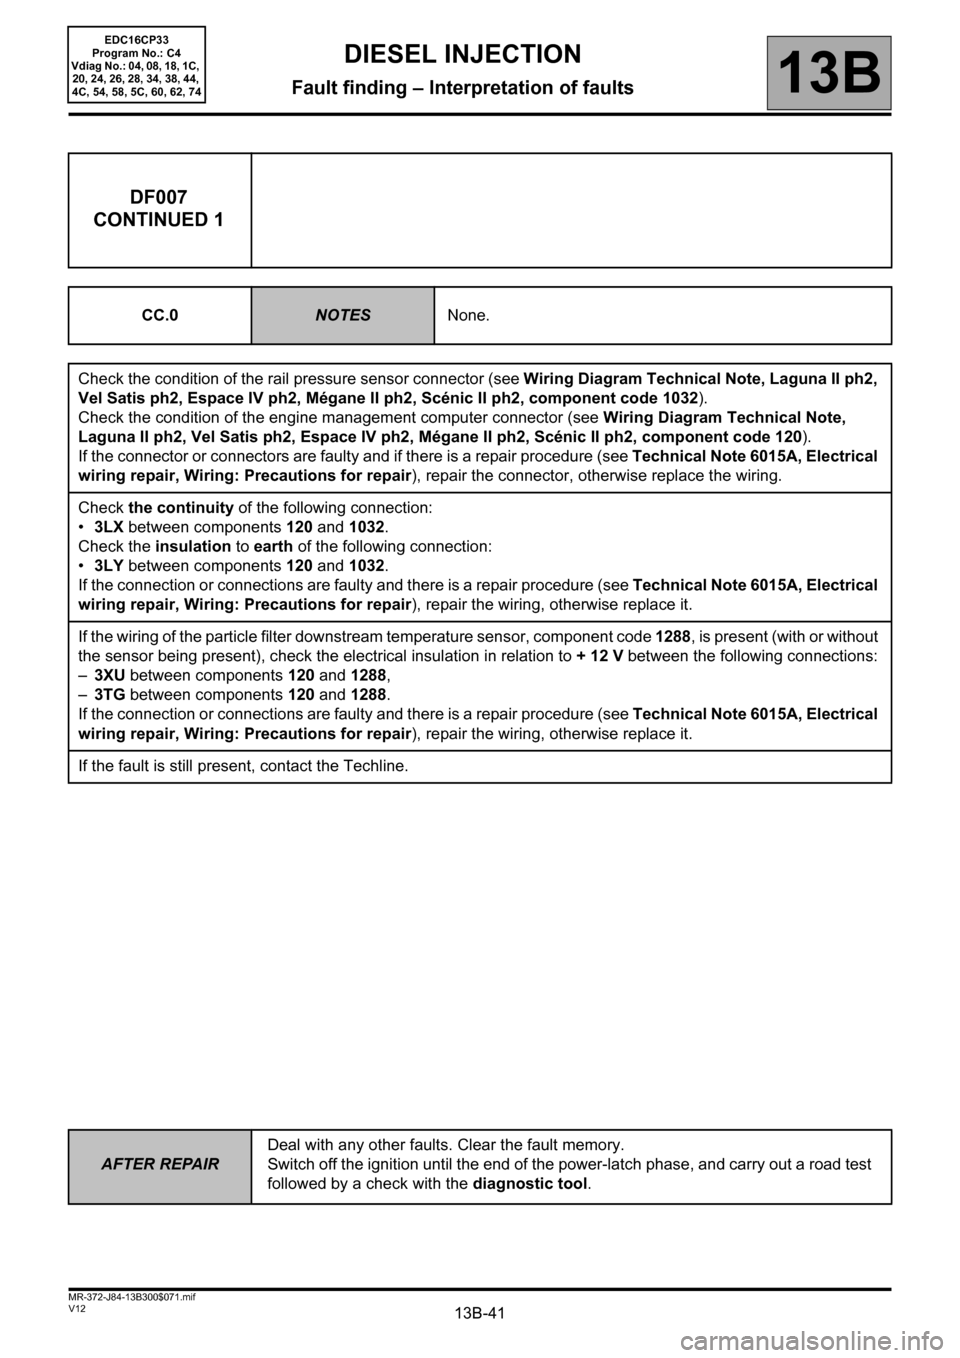 RENAULT SCENIC 2012 J95 / 3.G Engine And Peripherals EDC16CP33 Workshop Manual, Page 41